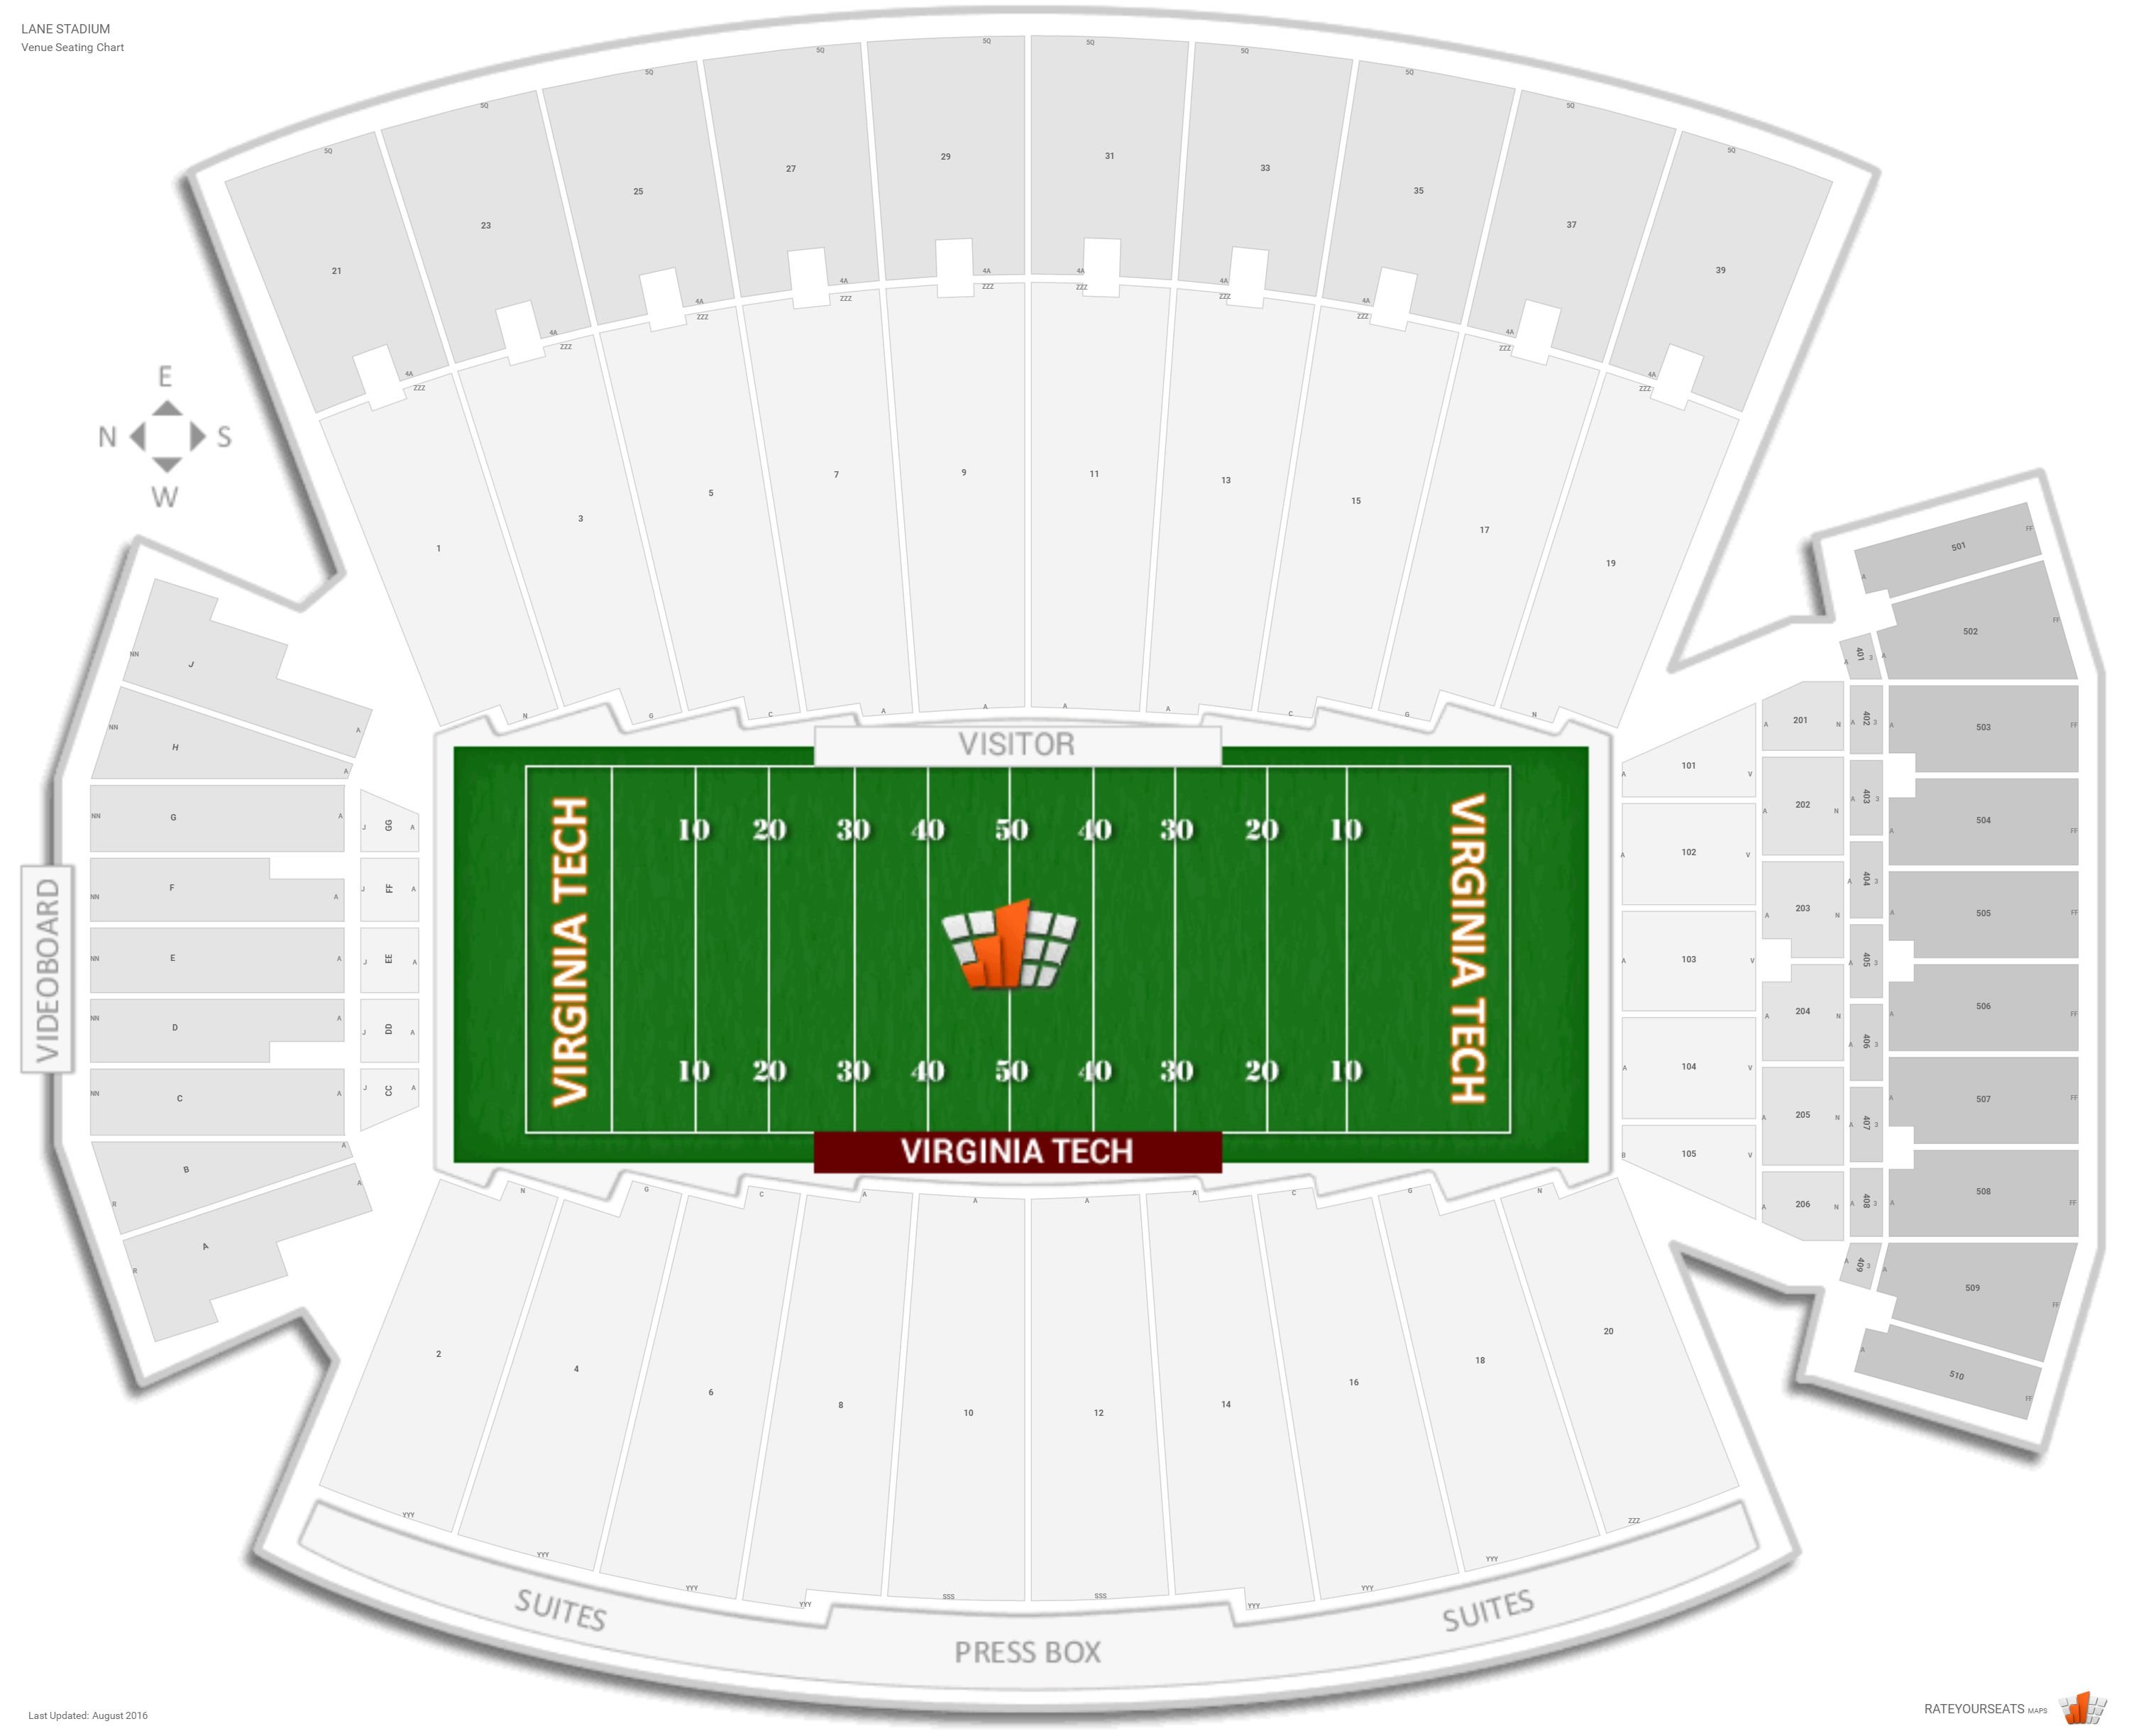 Lane stadium virginia tech seating guide rateyourseats com